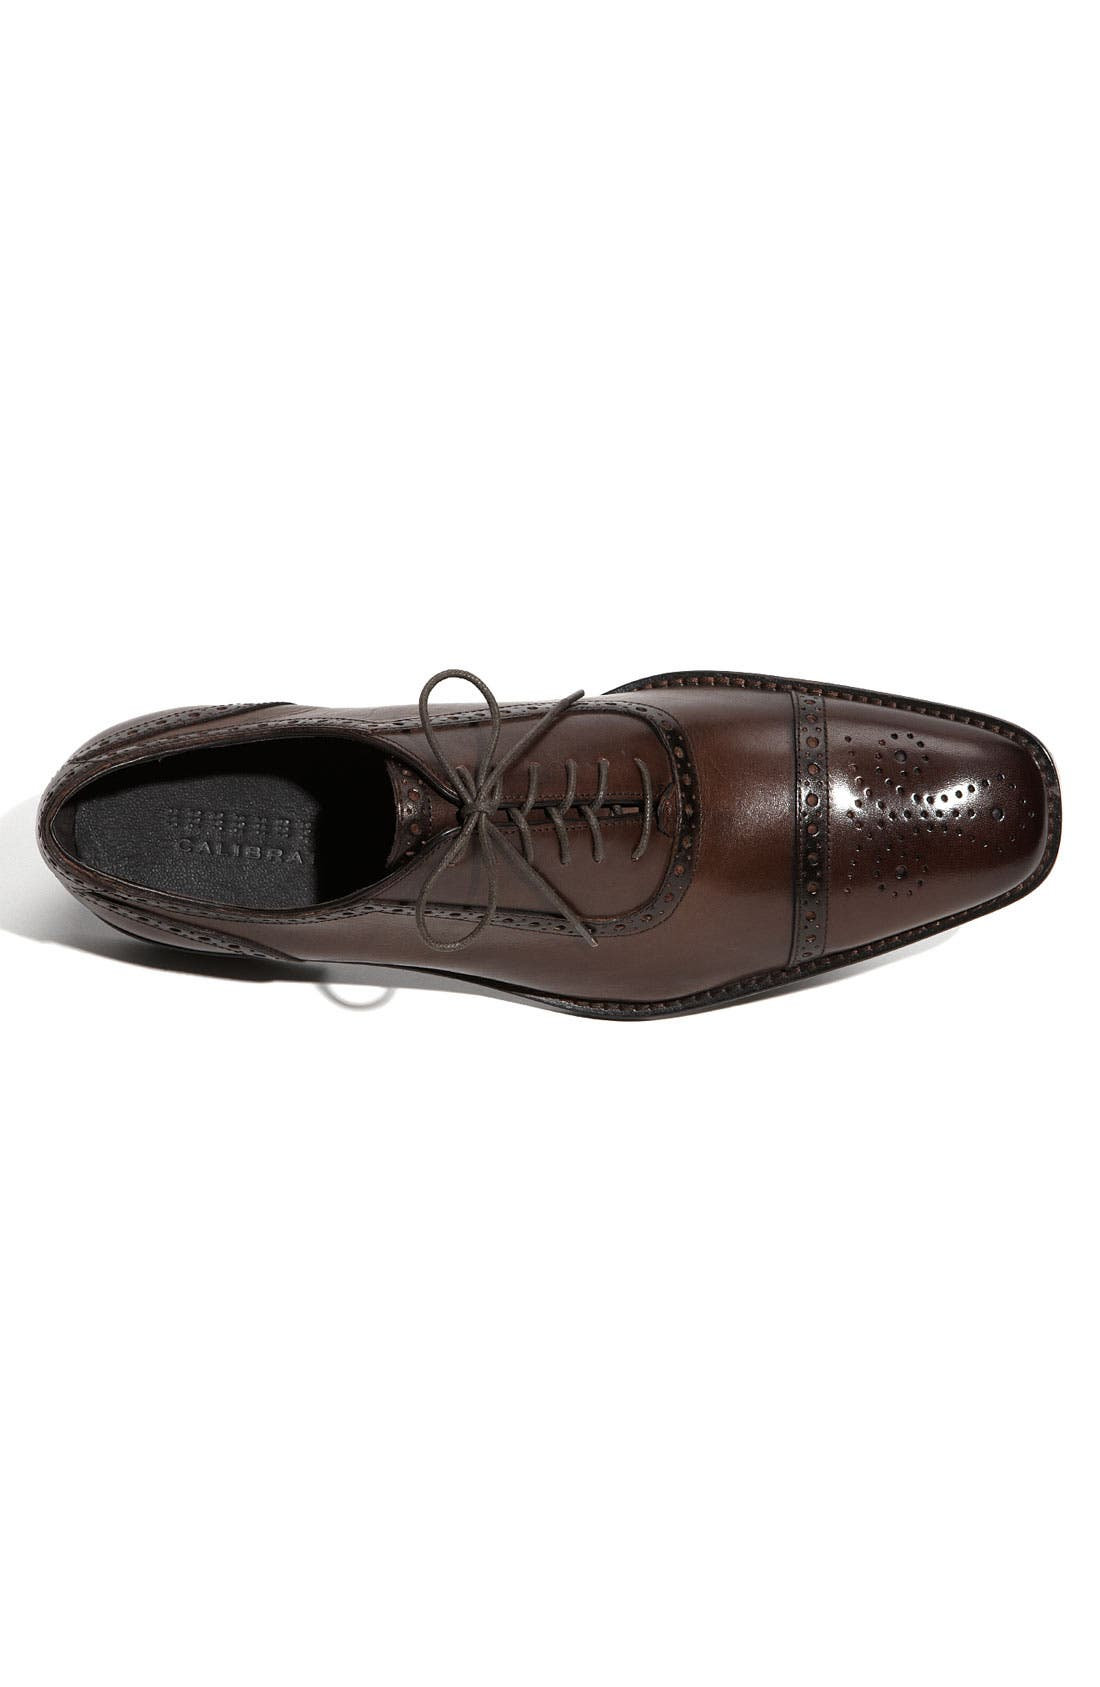 Alternate Image 3  - Calibrate 'Brandon' Cap Toe Oxford